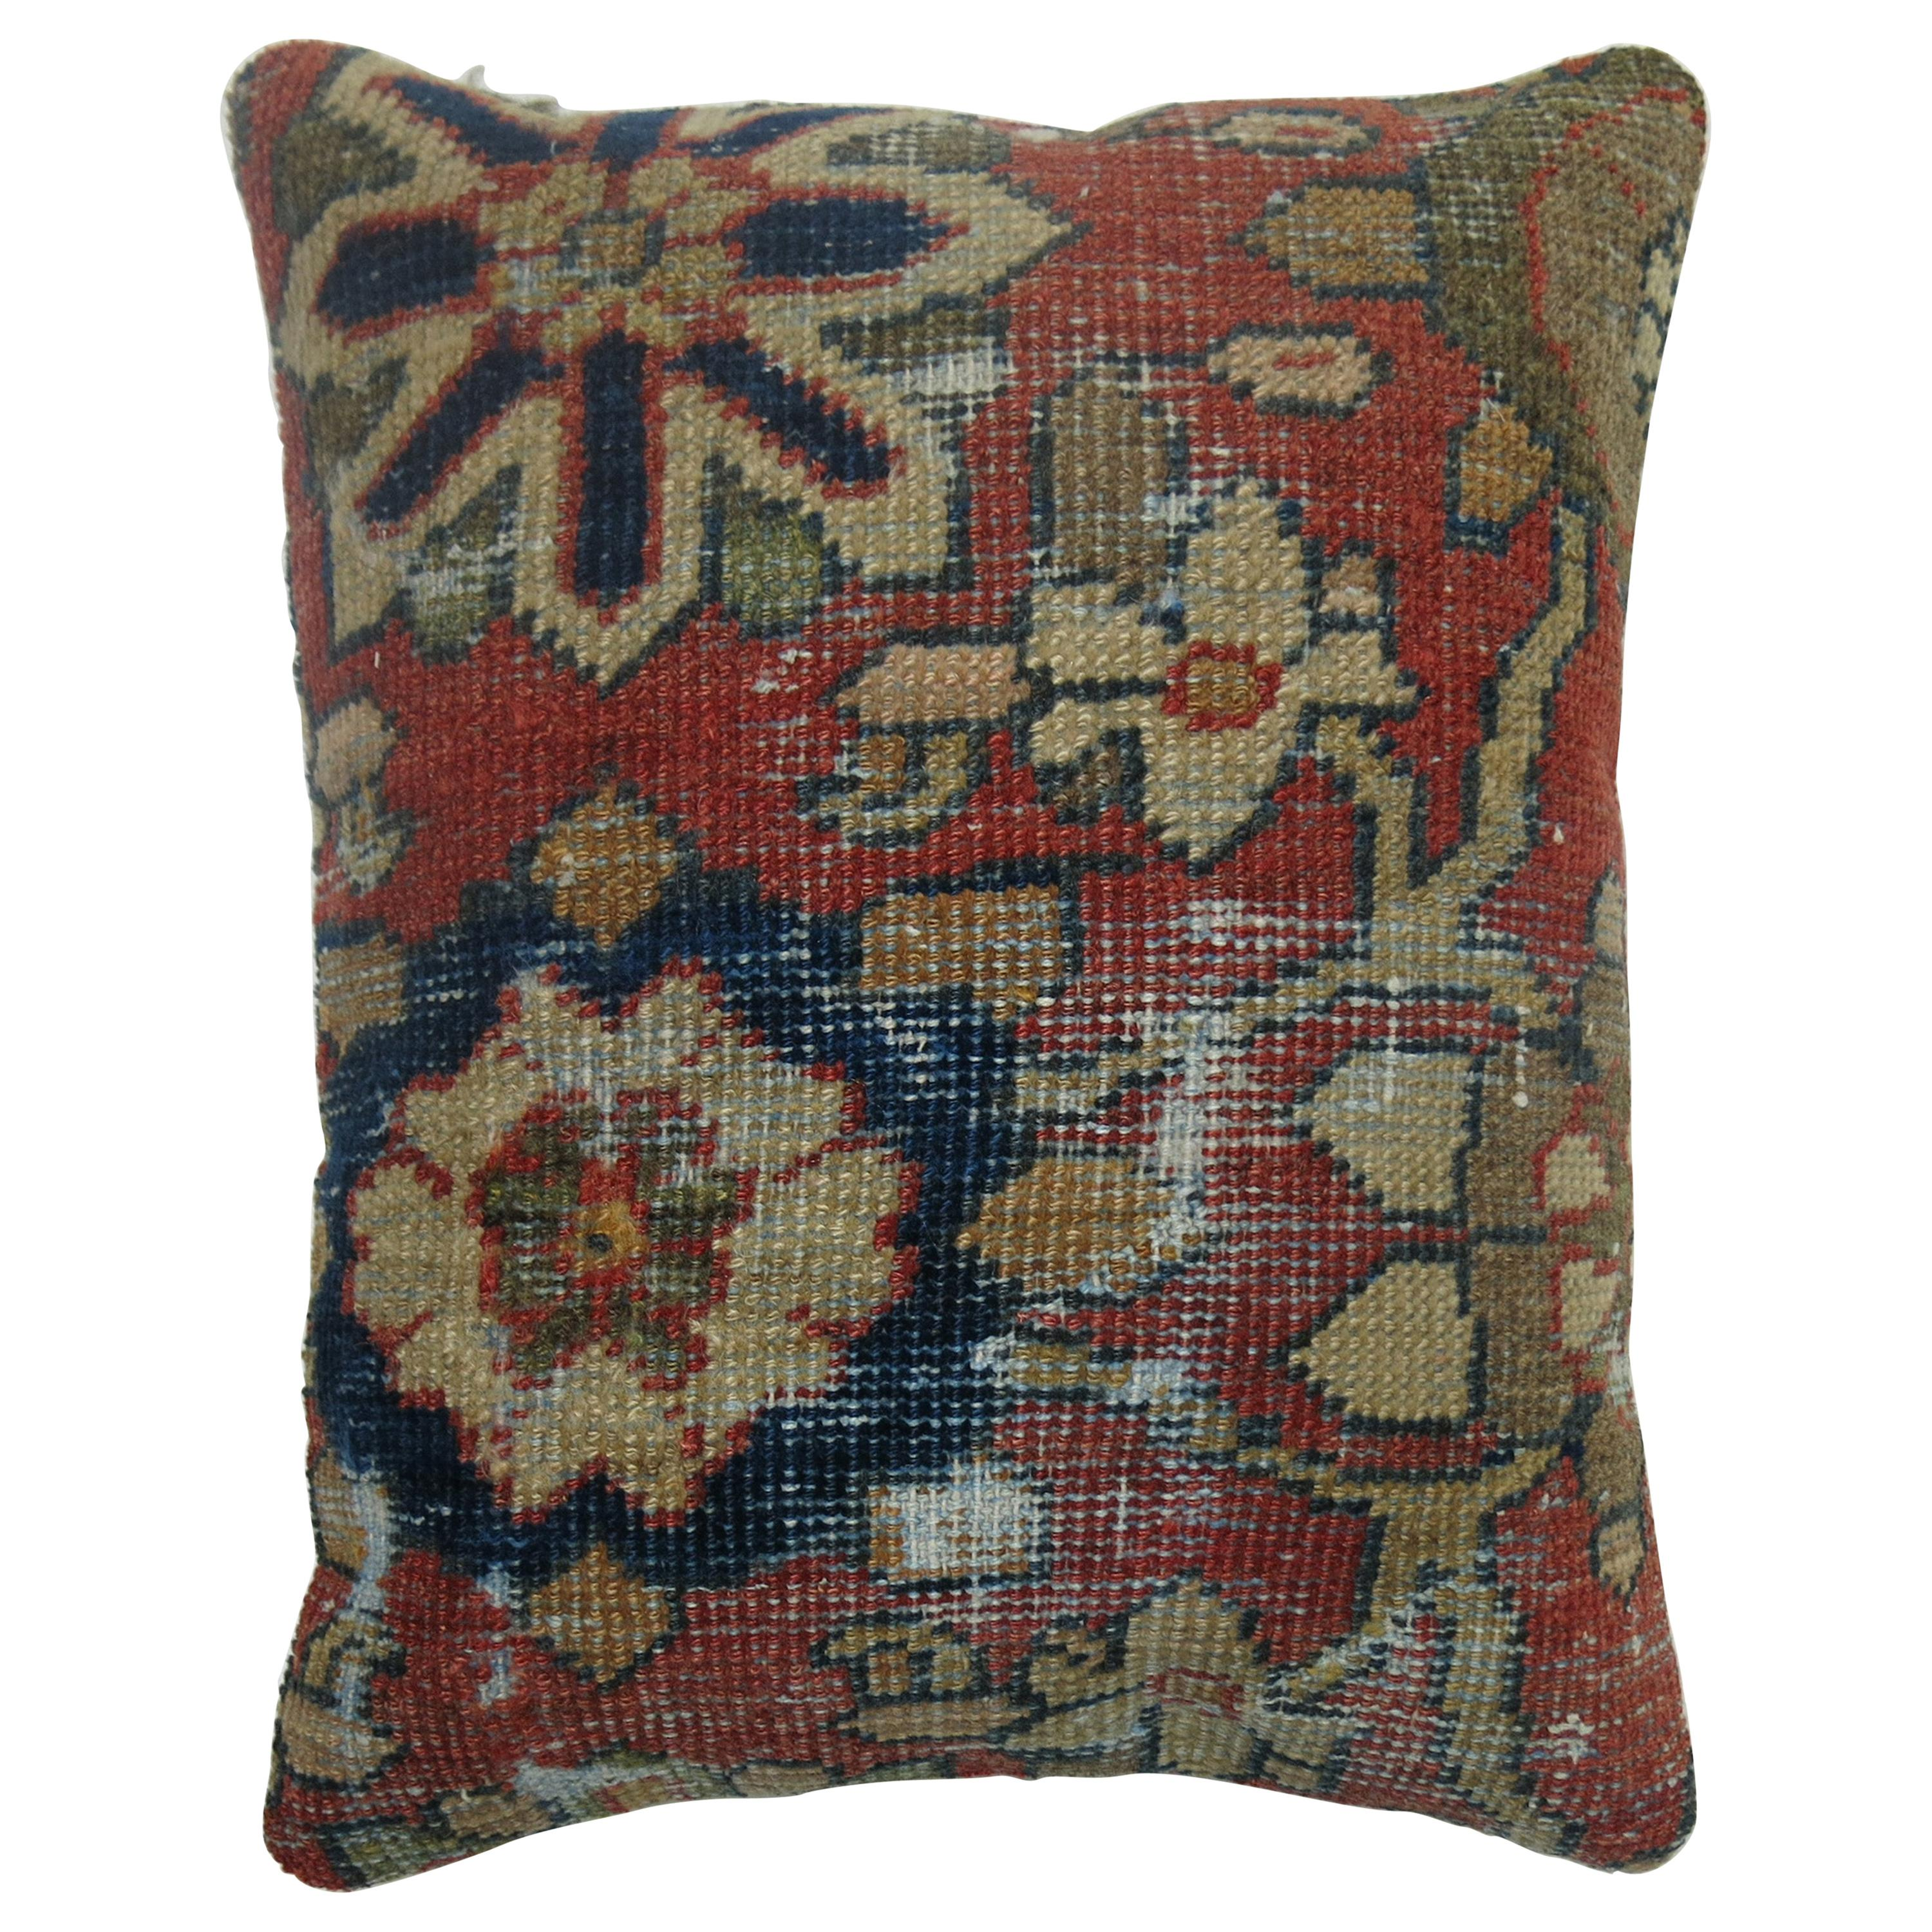 Worn Sultanabad Persian Rug Pillow